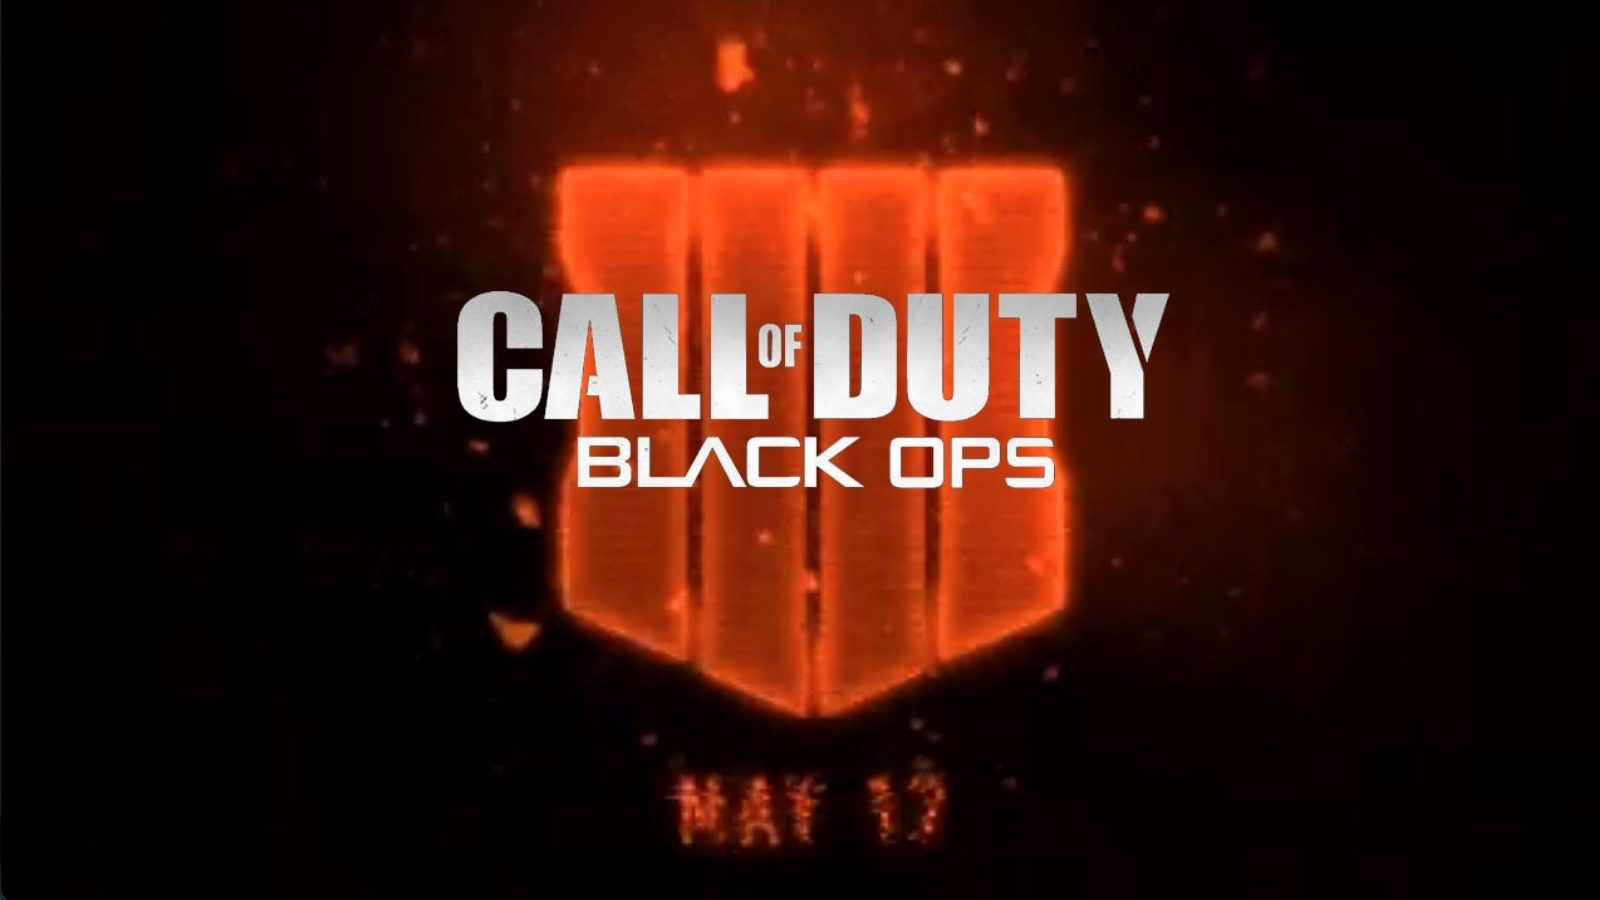 Call of Duty: Black Ops 4 contará con un entretenido modo Battle Royale CDD Juegos